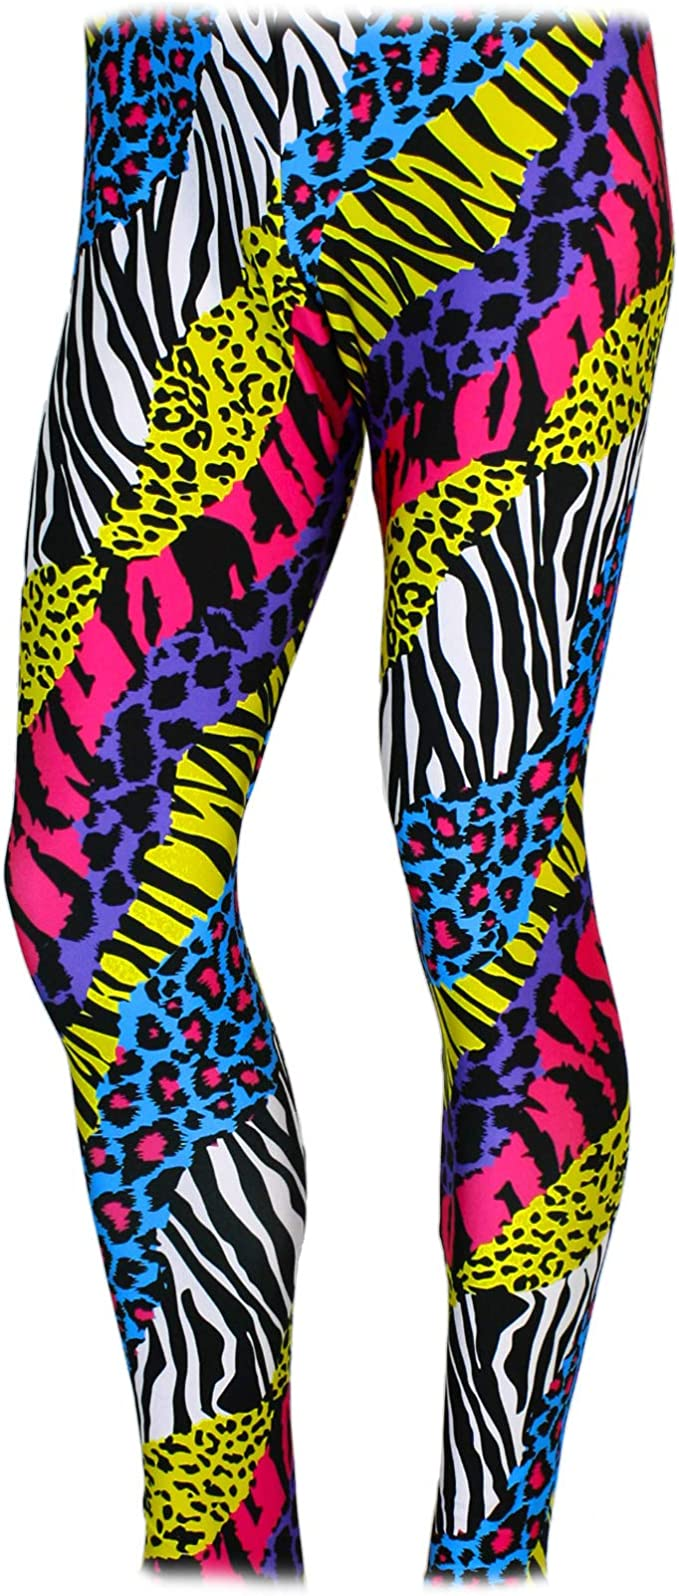 80s Costumes, Outfit Ideas- Girls and Guys Mens 80s Heavy Metal Pants Neon Animal Print Rainbow $37.49 AT vintagedancer.com